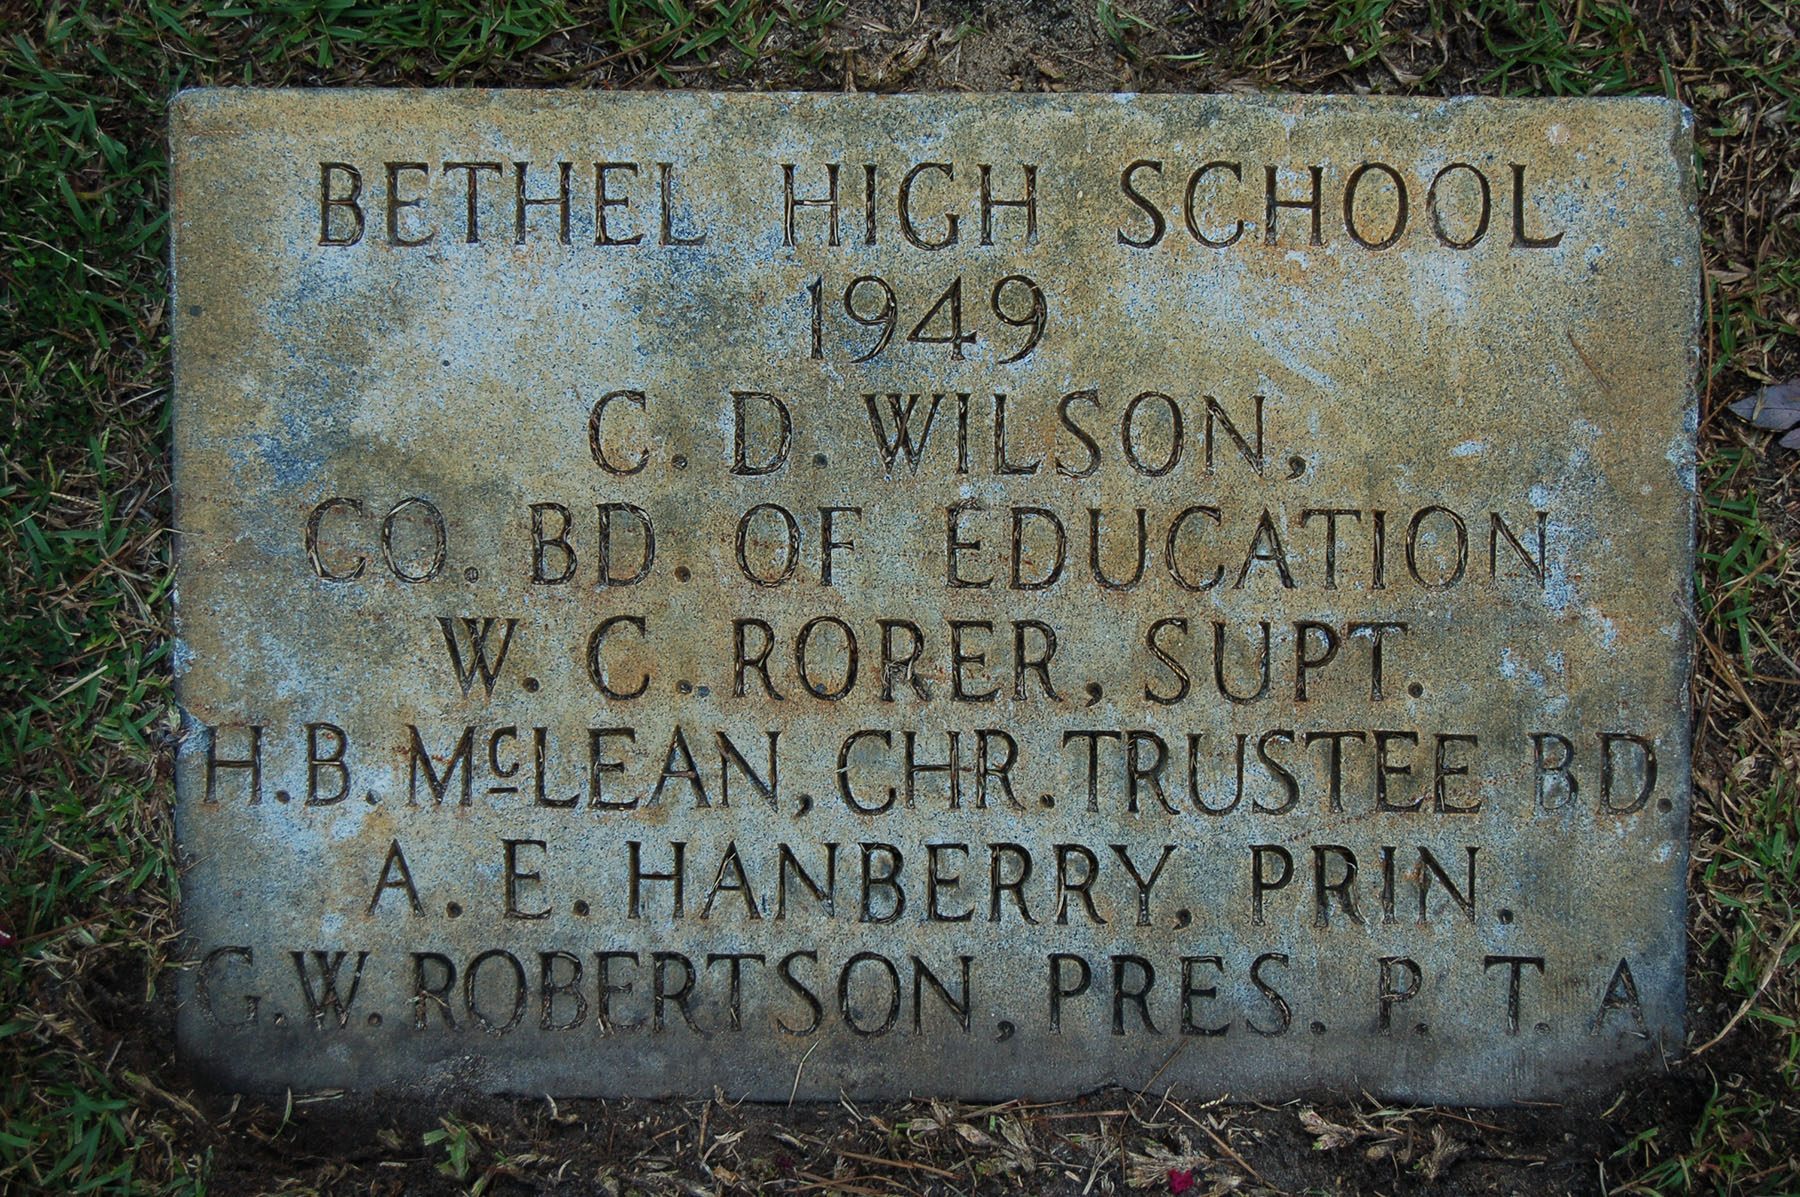 Bethel High School Marker 1949.  Photo by Jim McLean